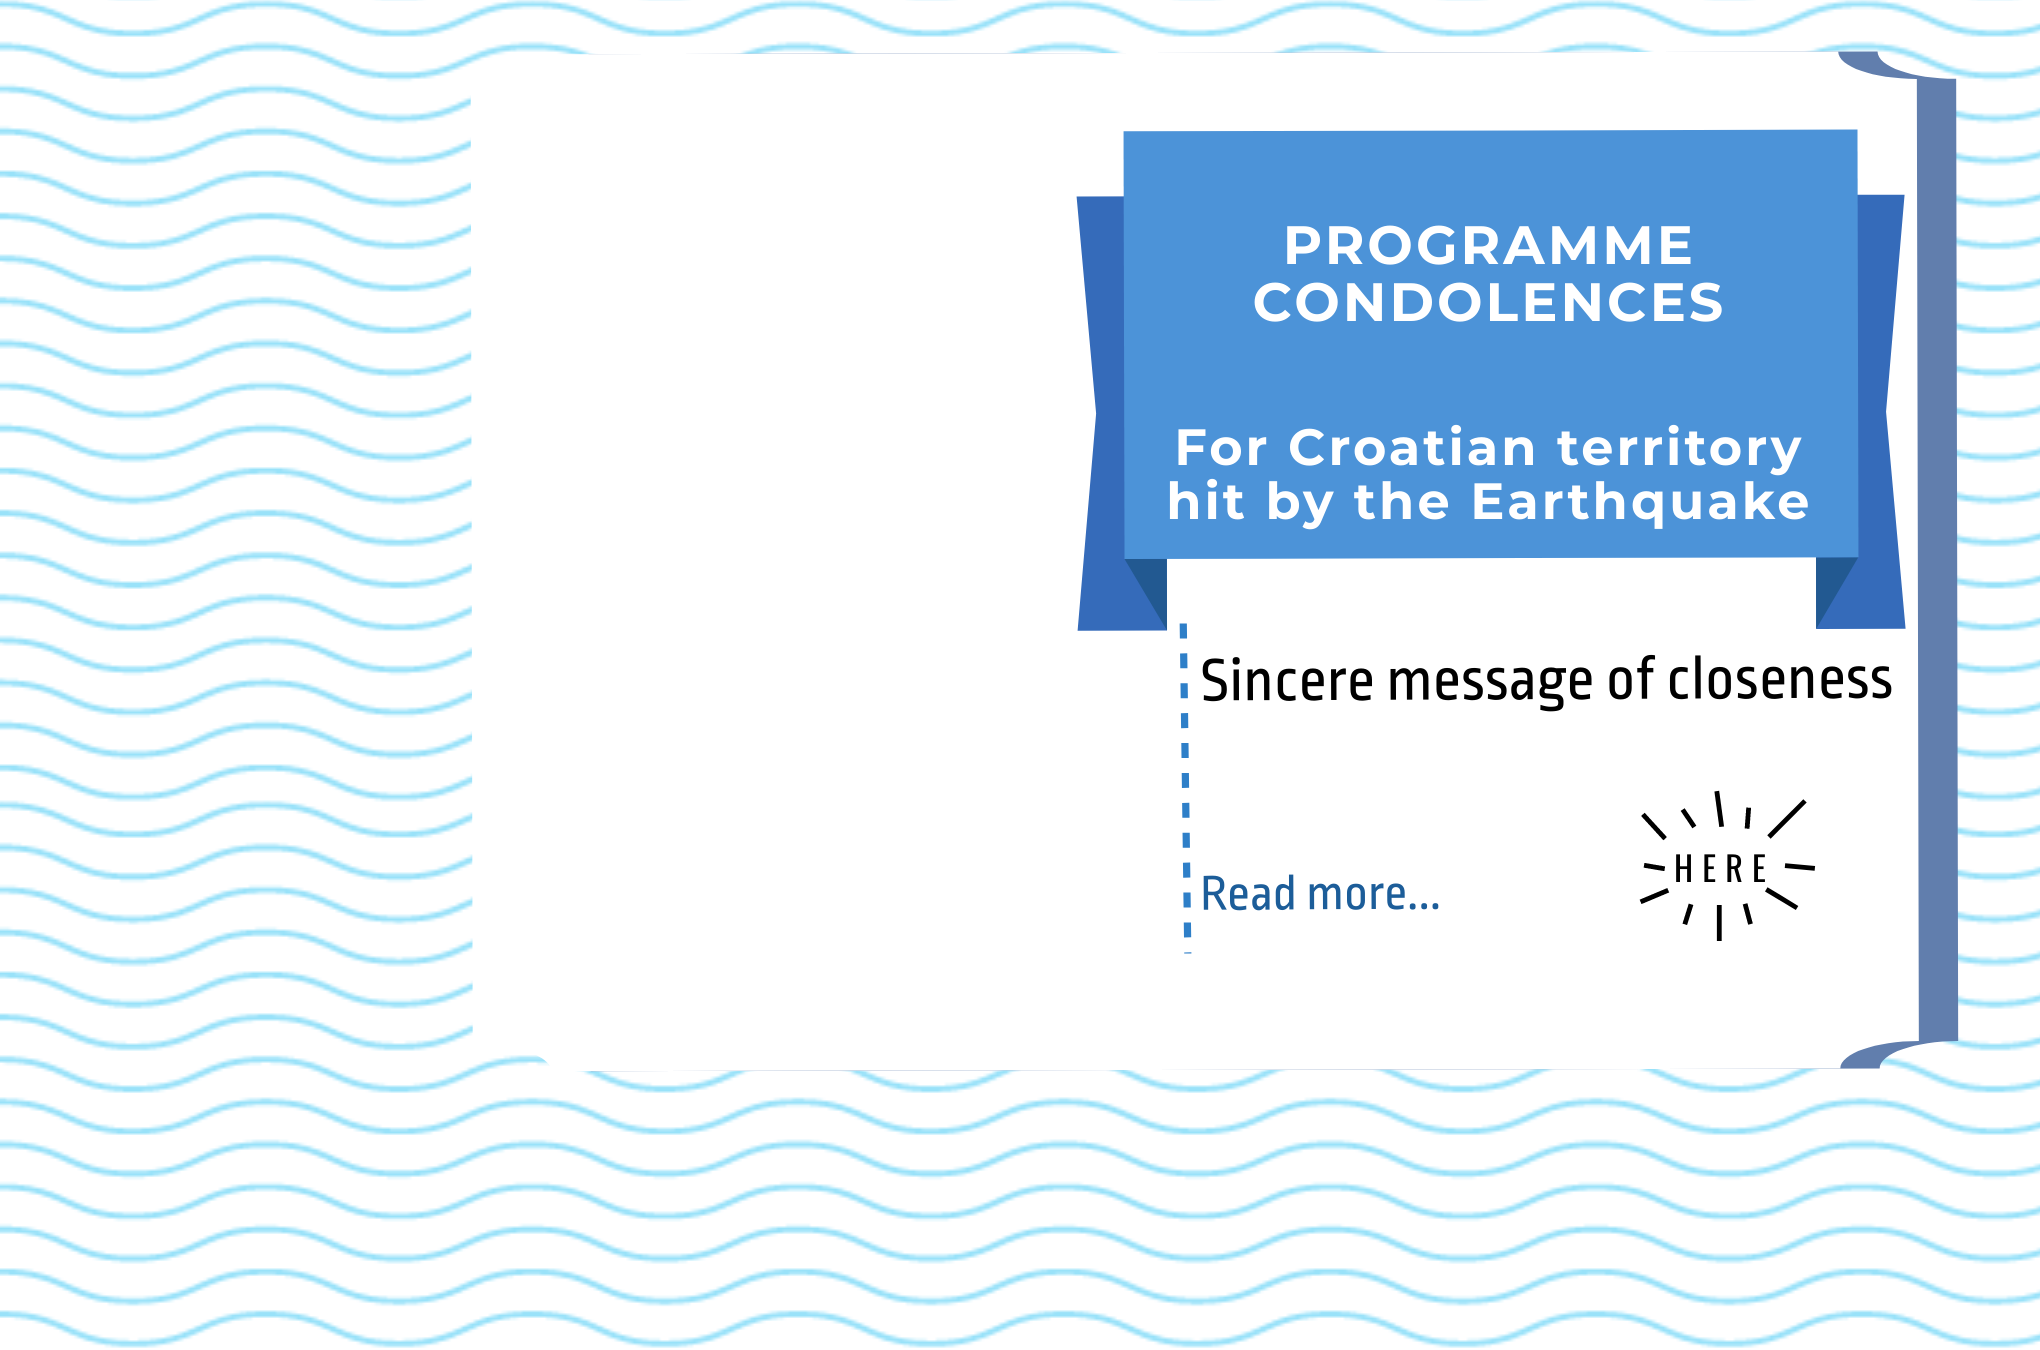 Programme condolences: for earthquake hit Croatian territories